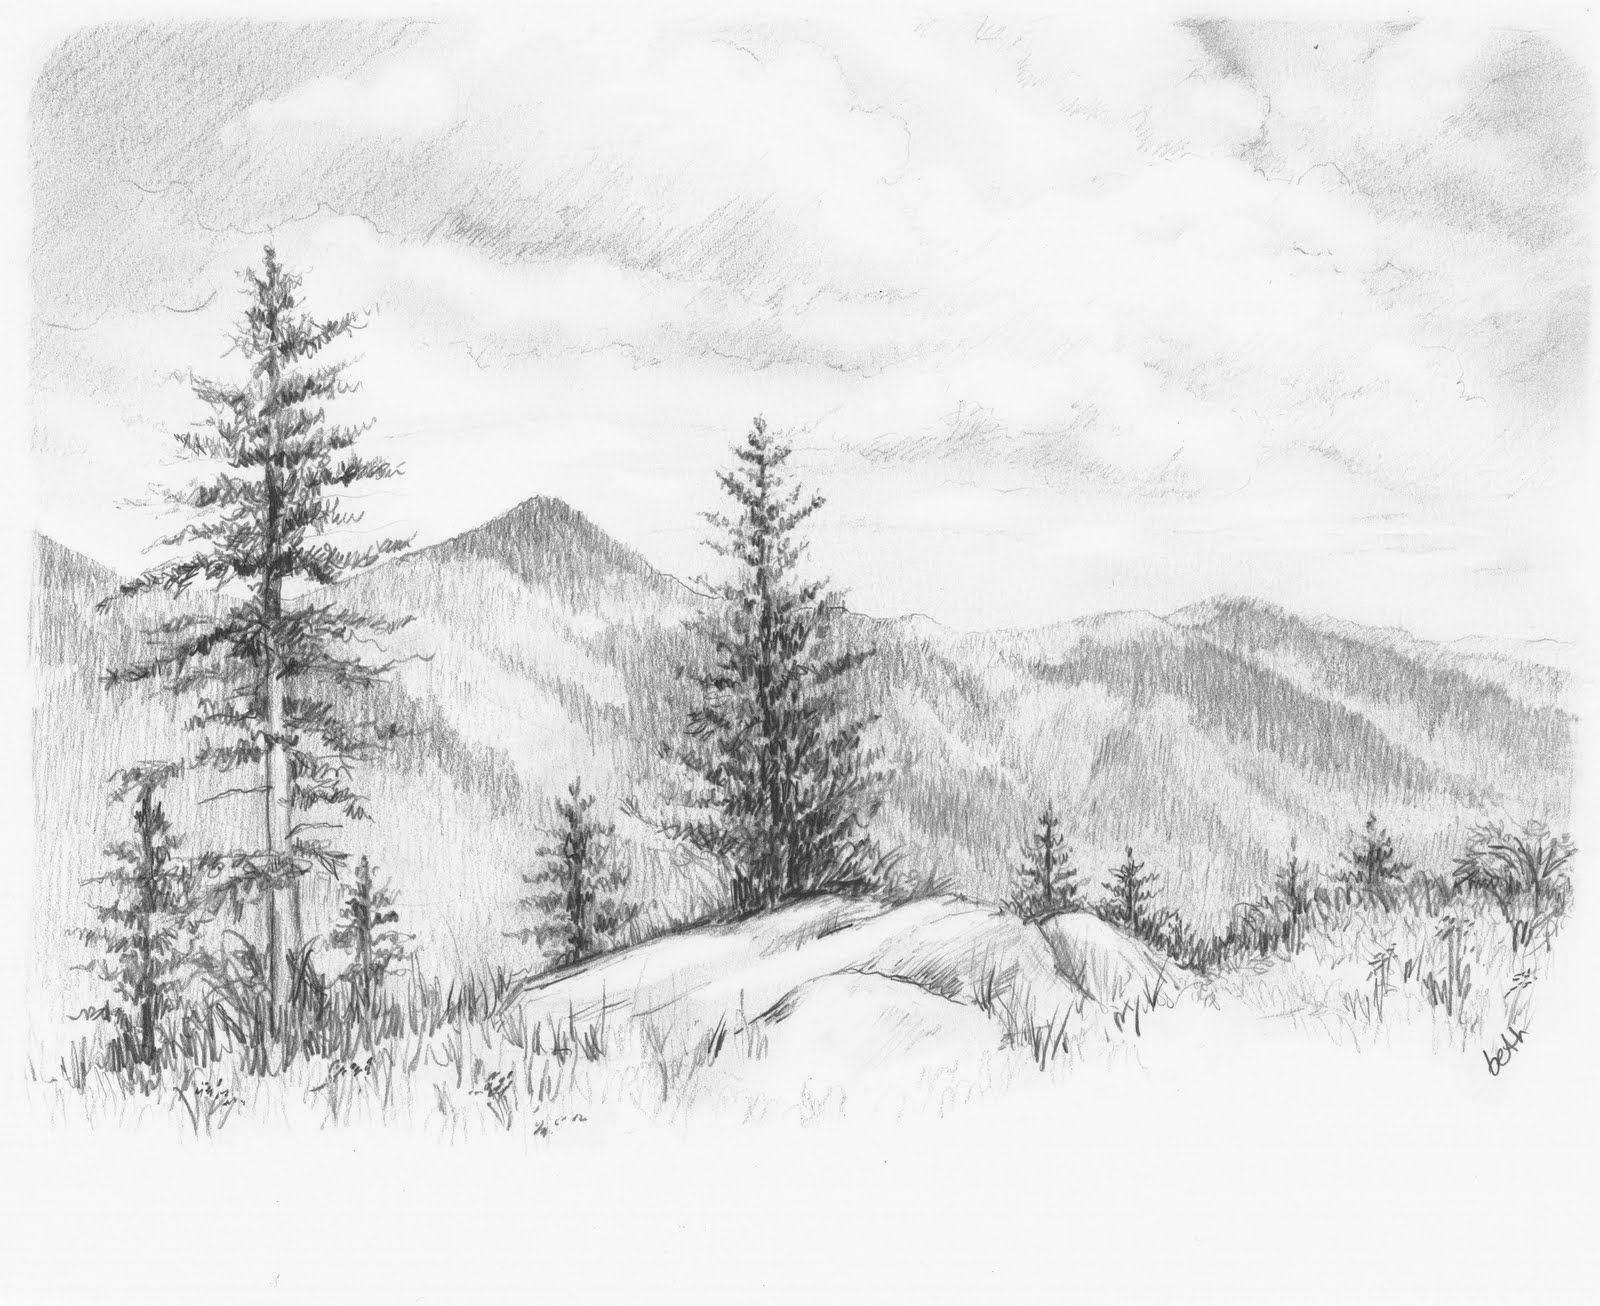 Nature Hd In Pencil Drawing Pencil Sketch